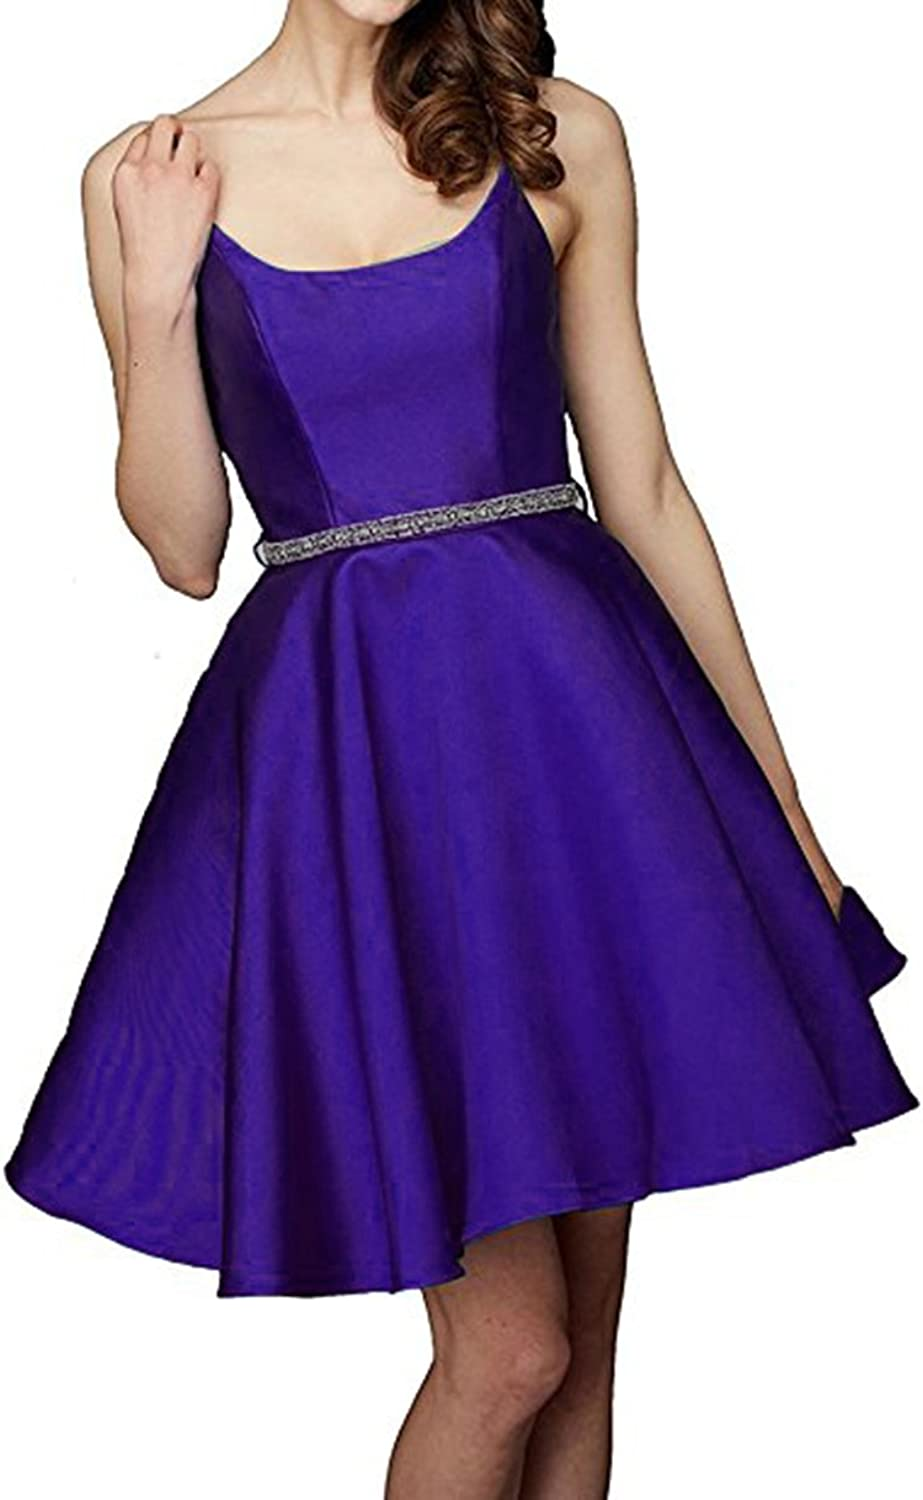 Alilith.Z Sexy Open Back Short Homecoming Prom Dresses Cocktail Evening Party Dresses for Women with Beaded Sash